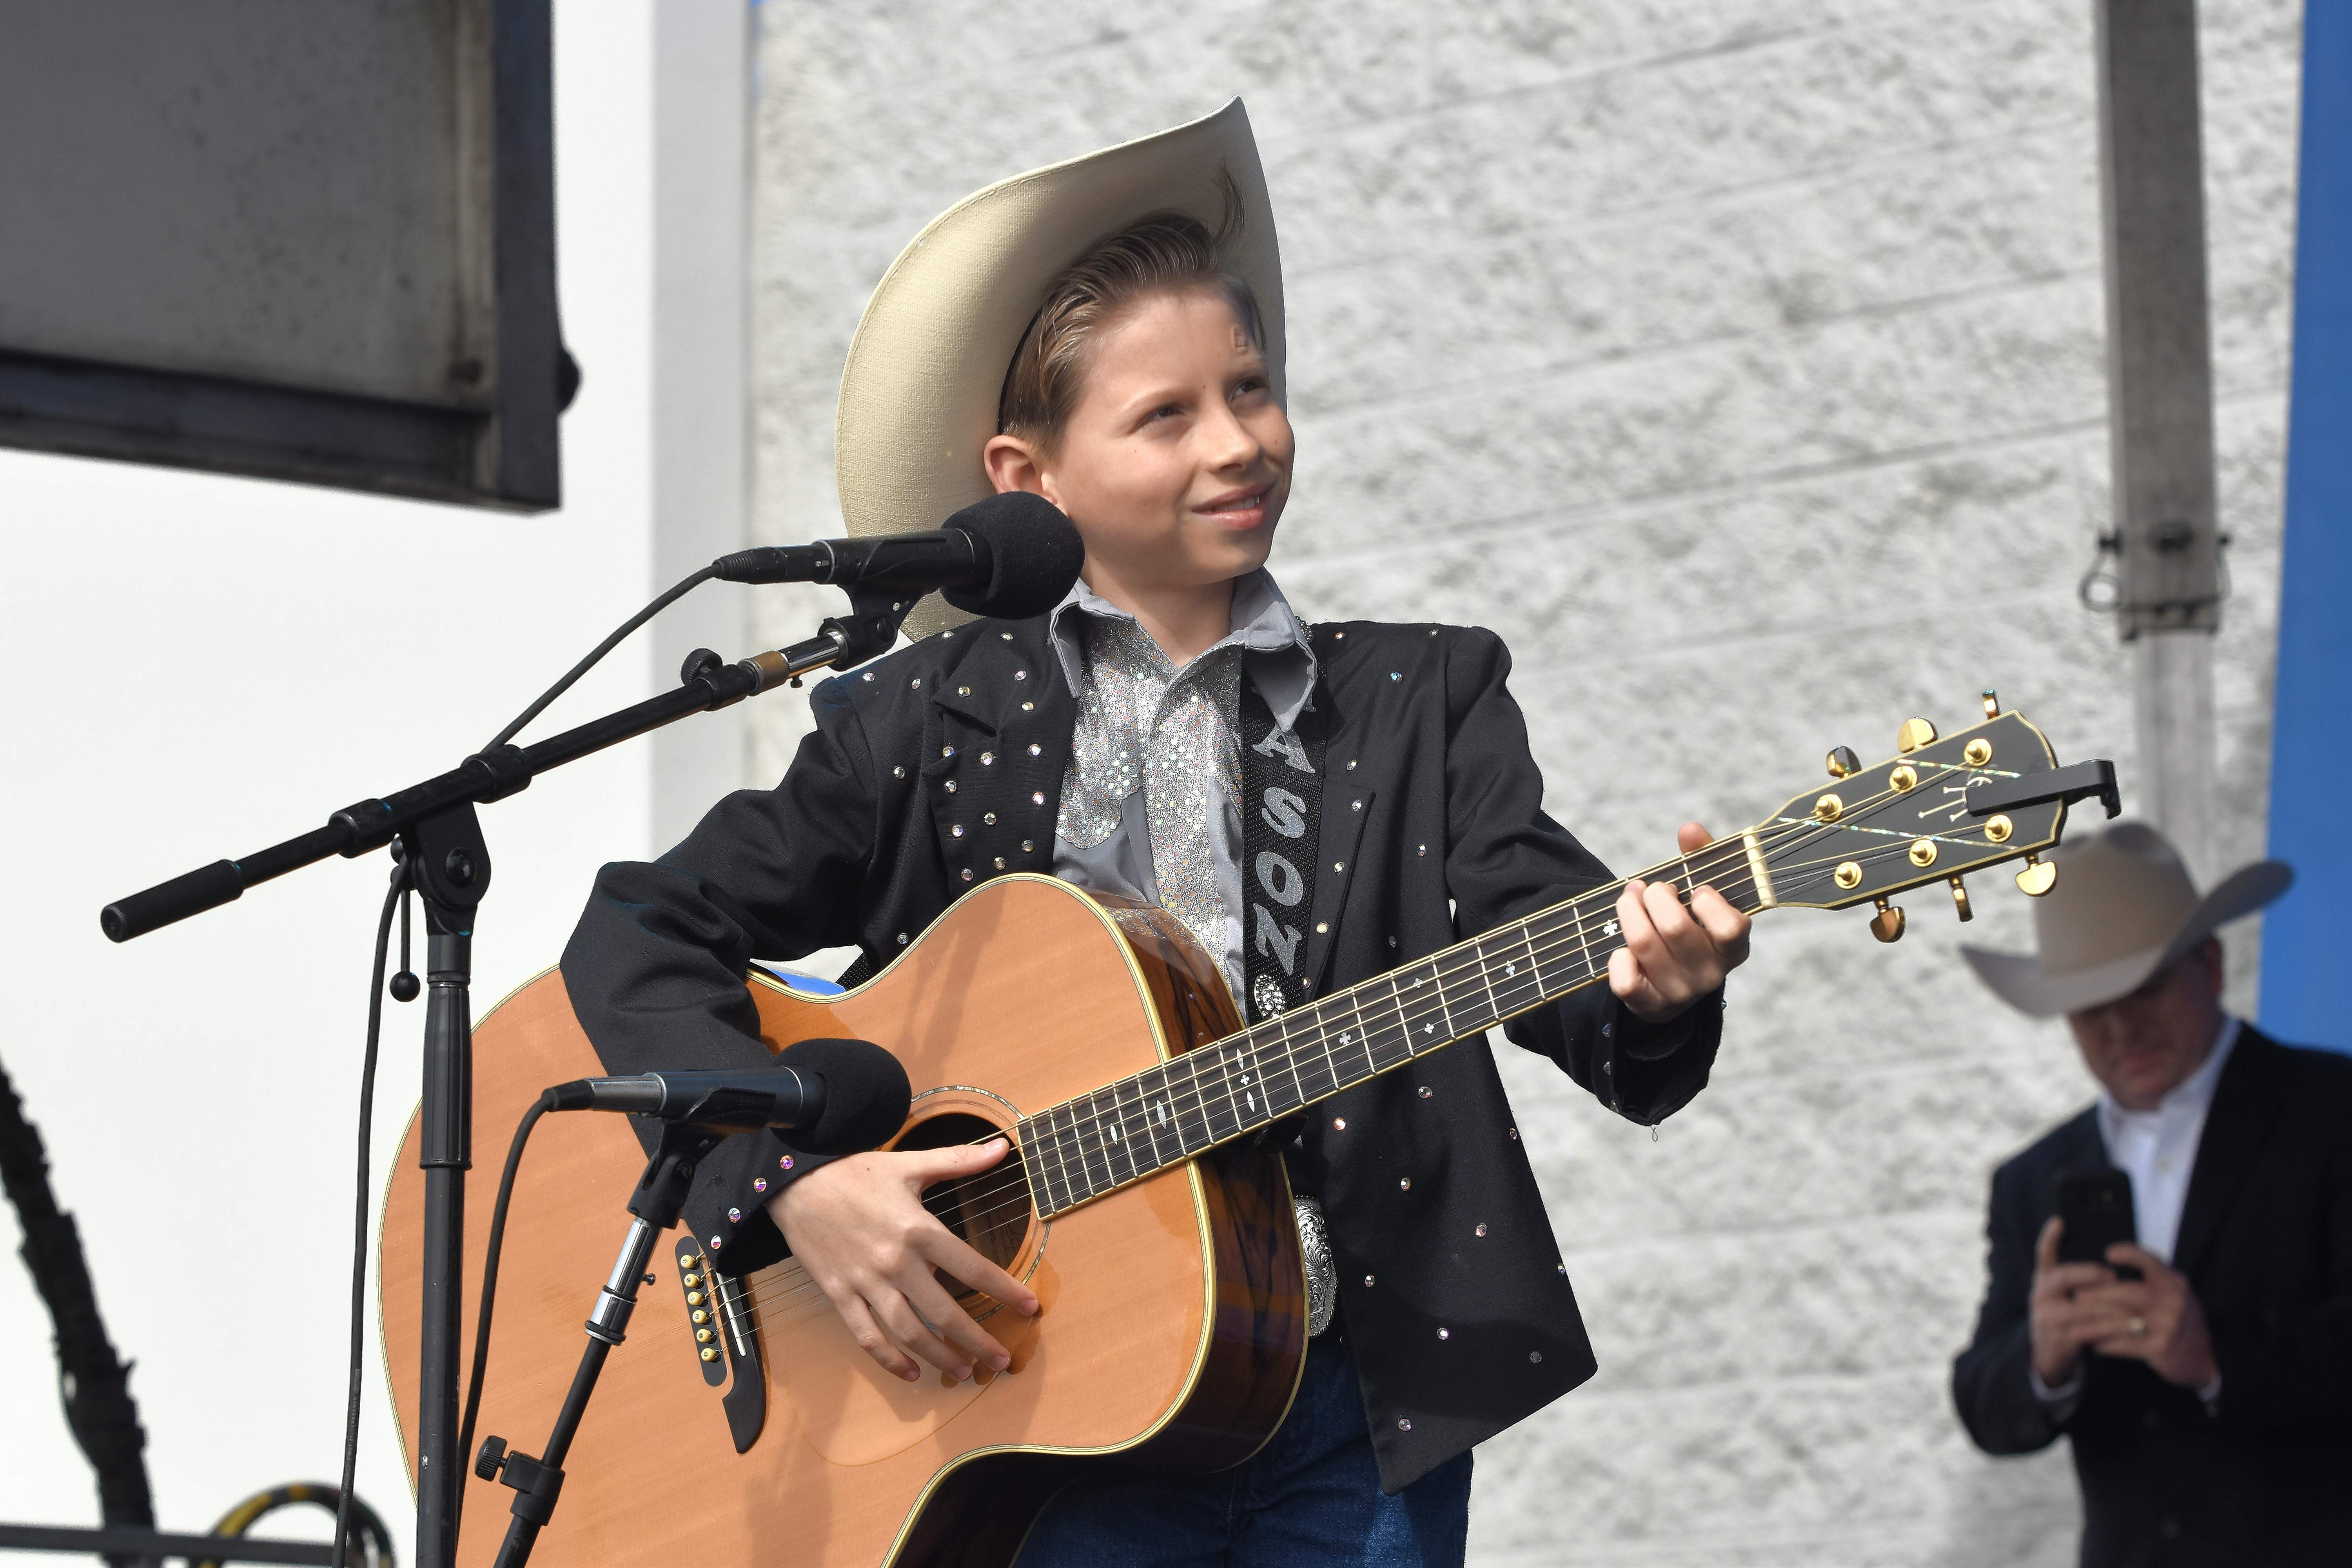 Mason Ramsey is relaxed and seems to enjoy his performance Wednesday at the Harrisburg Walmart.